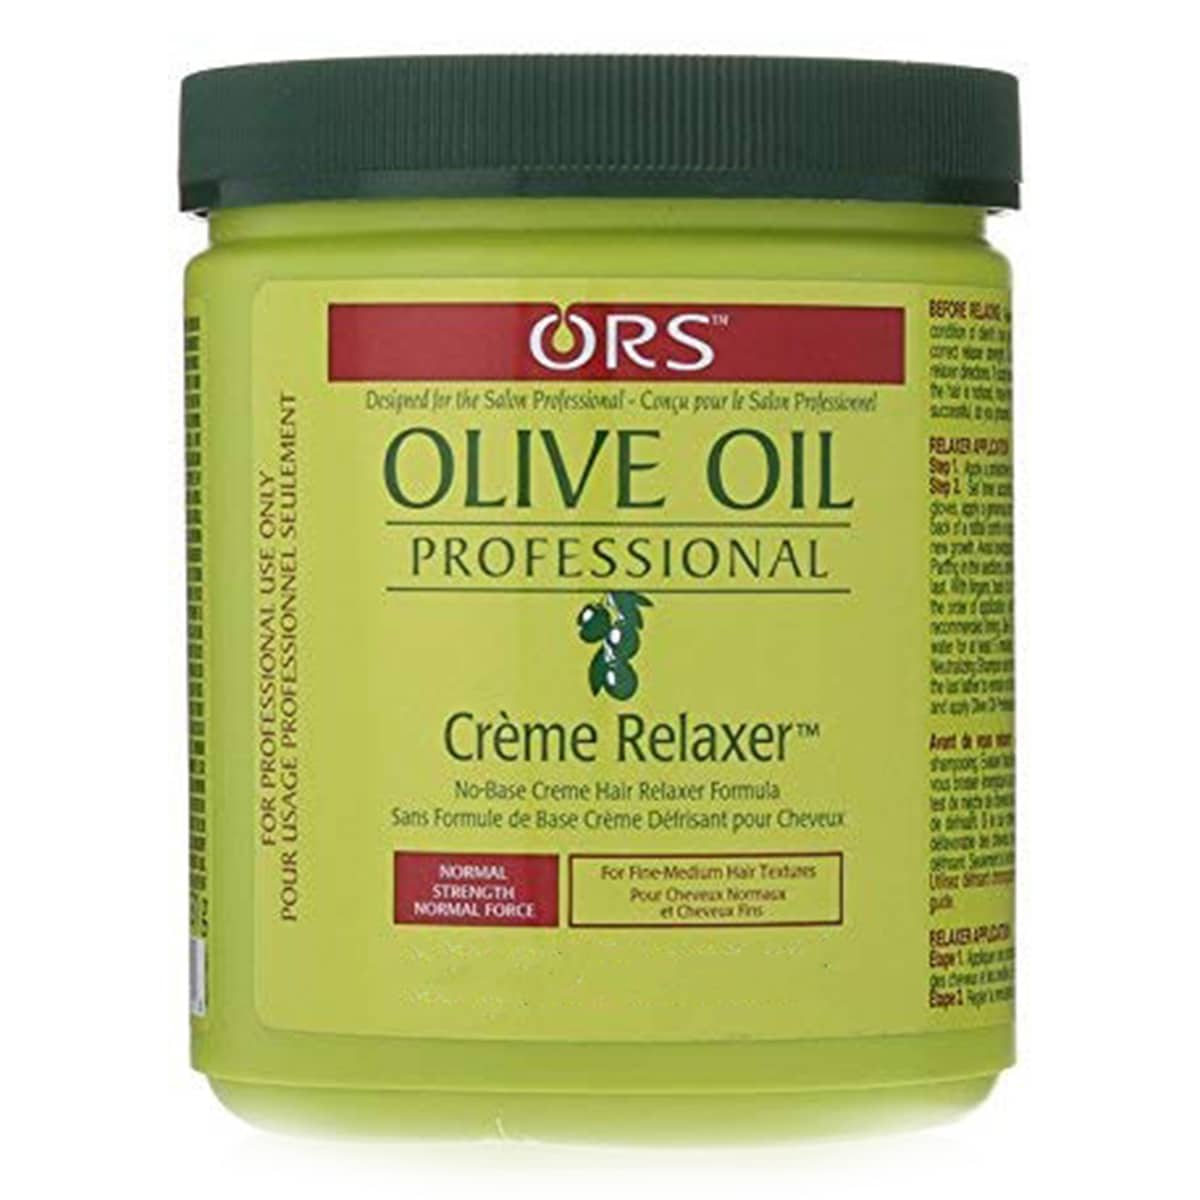 Buy Organic Root Stimulator (ORS) Olive Oil Professional Crème Relaxer Normal - 530 gm